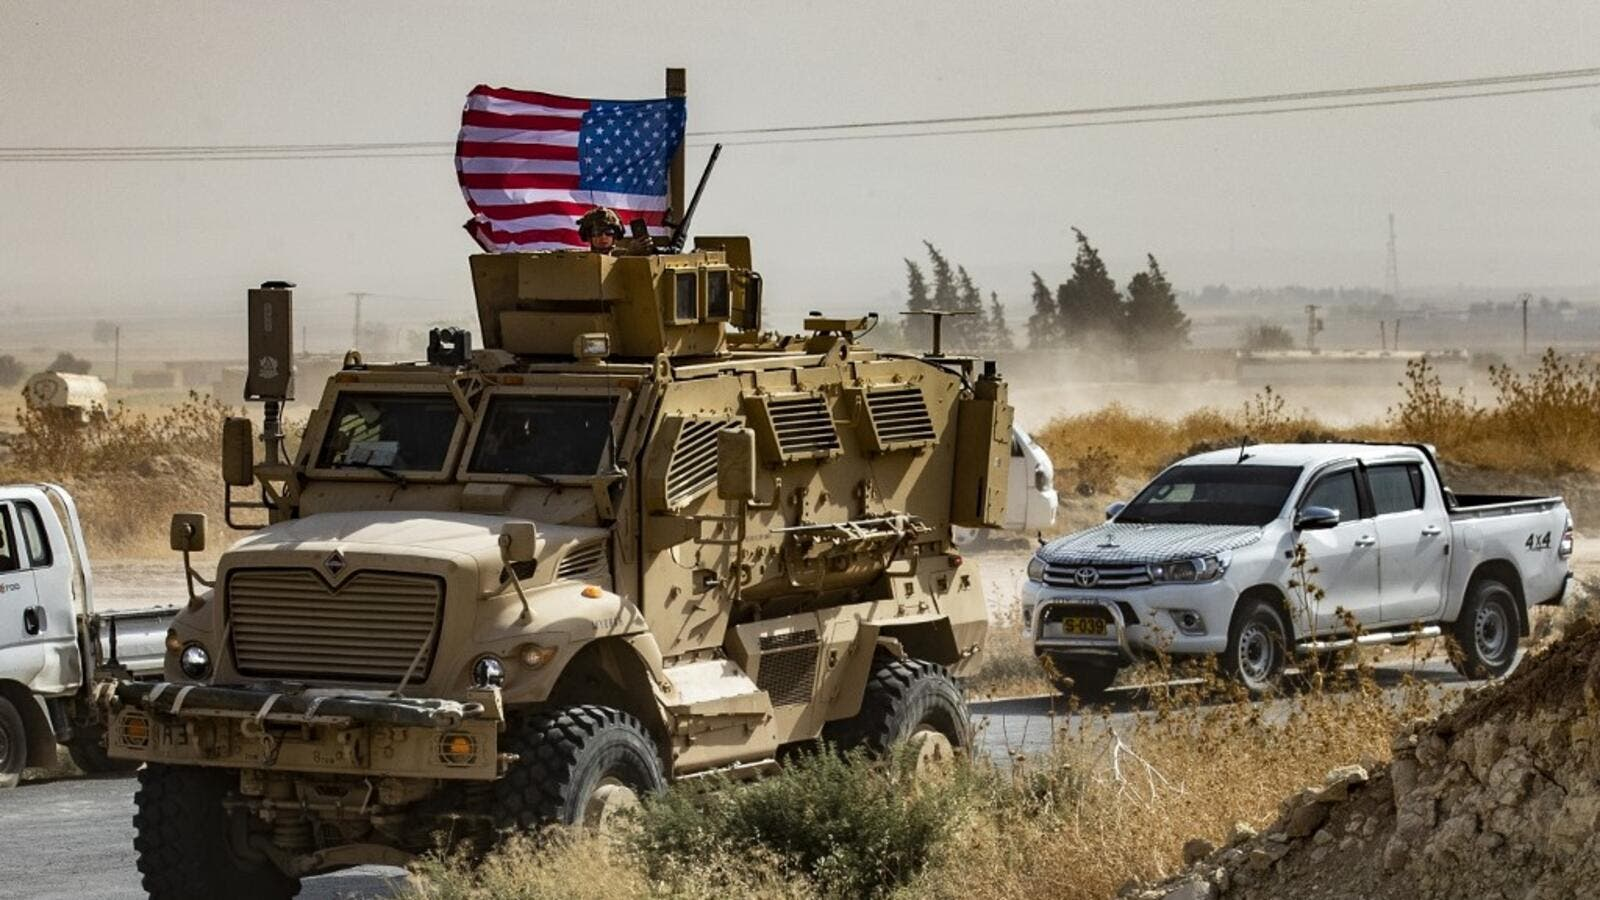 In this file photo taken on October 6, 2019 a US soldier sits atop an armoured vehicle during a demonstration by Syrian Kurds against Turkish threats next to a base for the US-led international coalition on the outskirts of Ras al-Ain town in Syria's Hasakeh province near the Turkish border. (AFP/ File Photo)